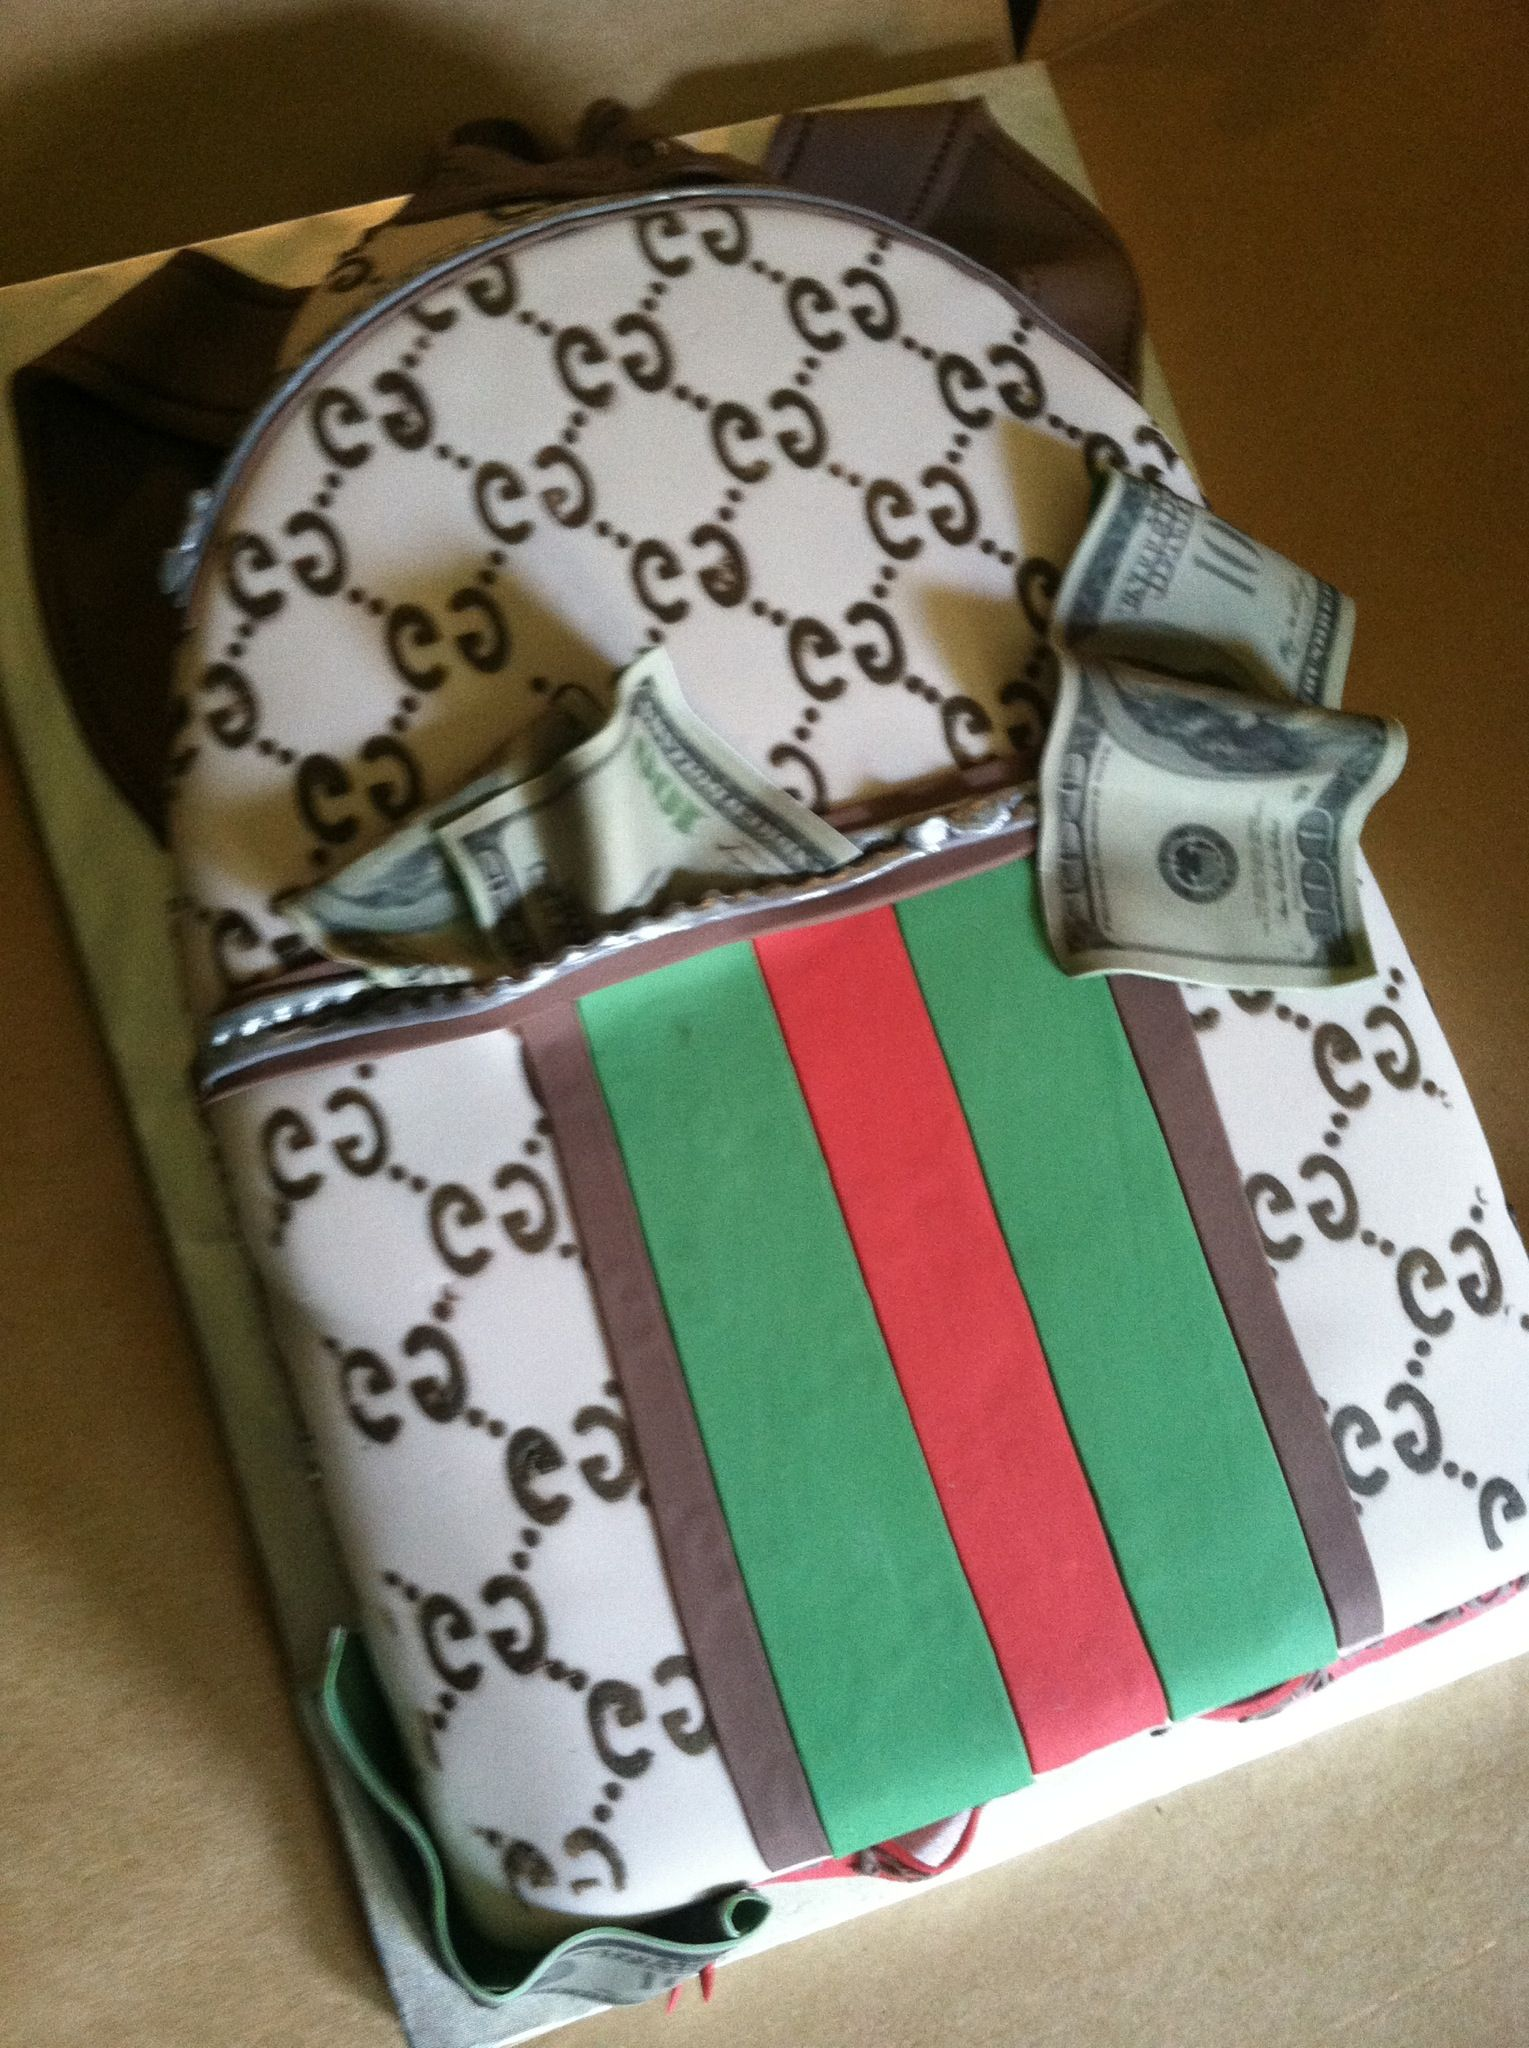 Gucci Backpack Cake All Edible Adult Birthday Cakes